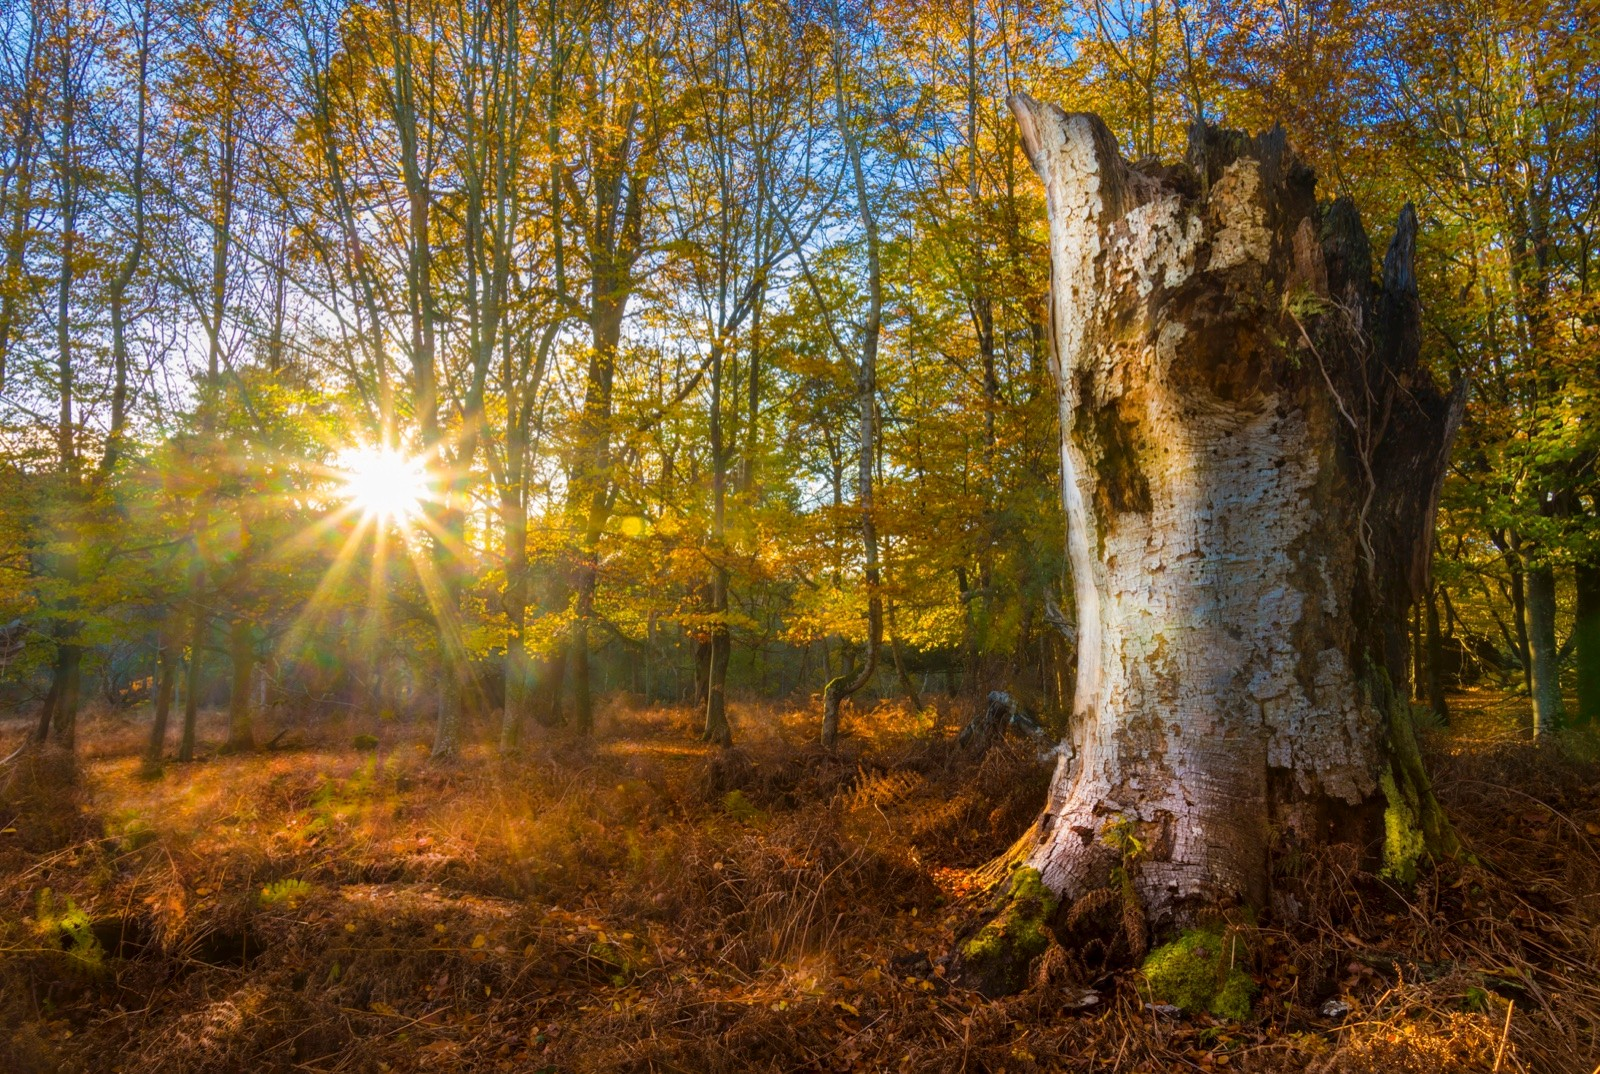 Bright sunlight on a clear autumn day streams through trees and leaves in the New Forest